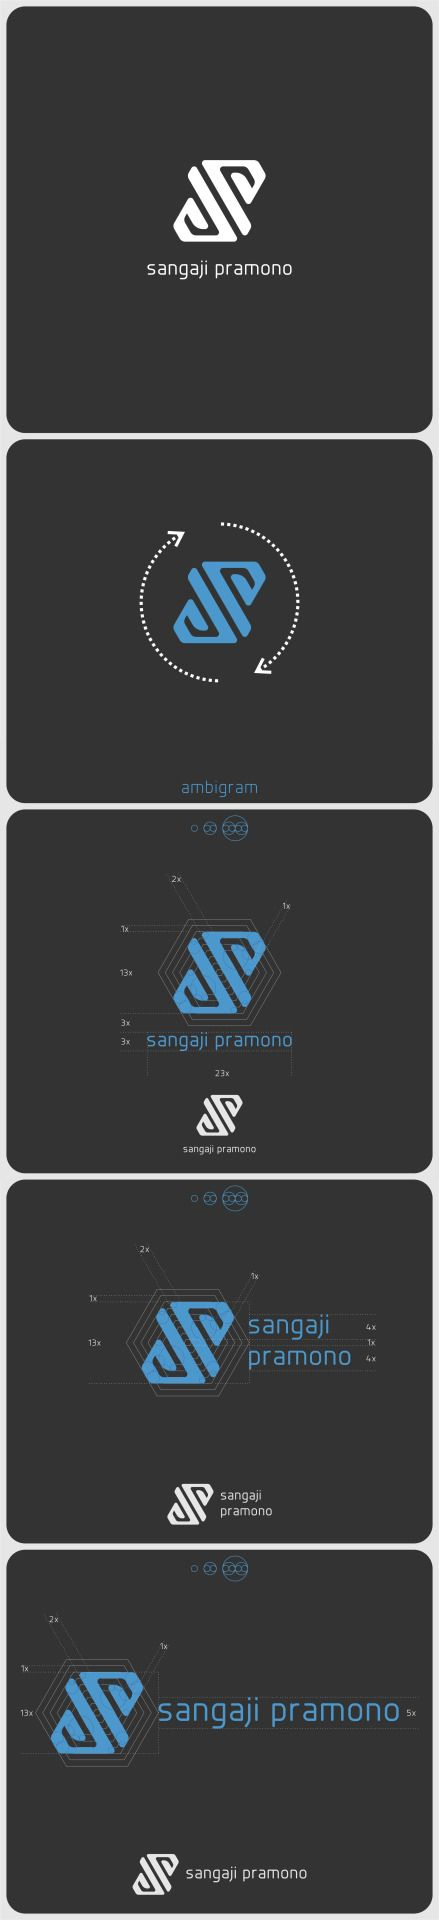 Below are two different file formats of the superman logo in a beveled - Sangaji Pramono S Logo